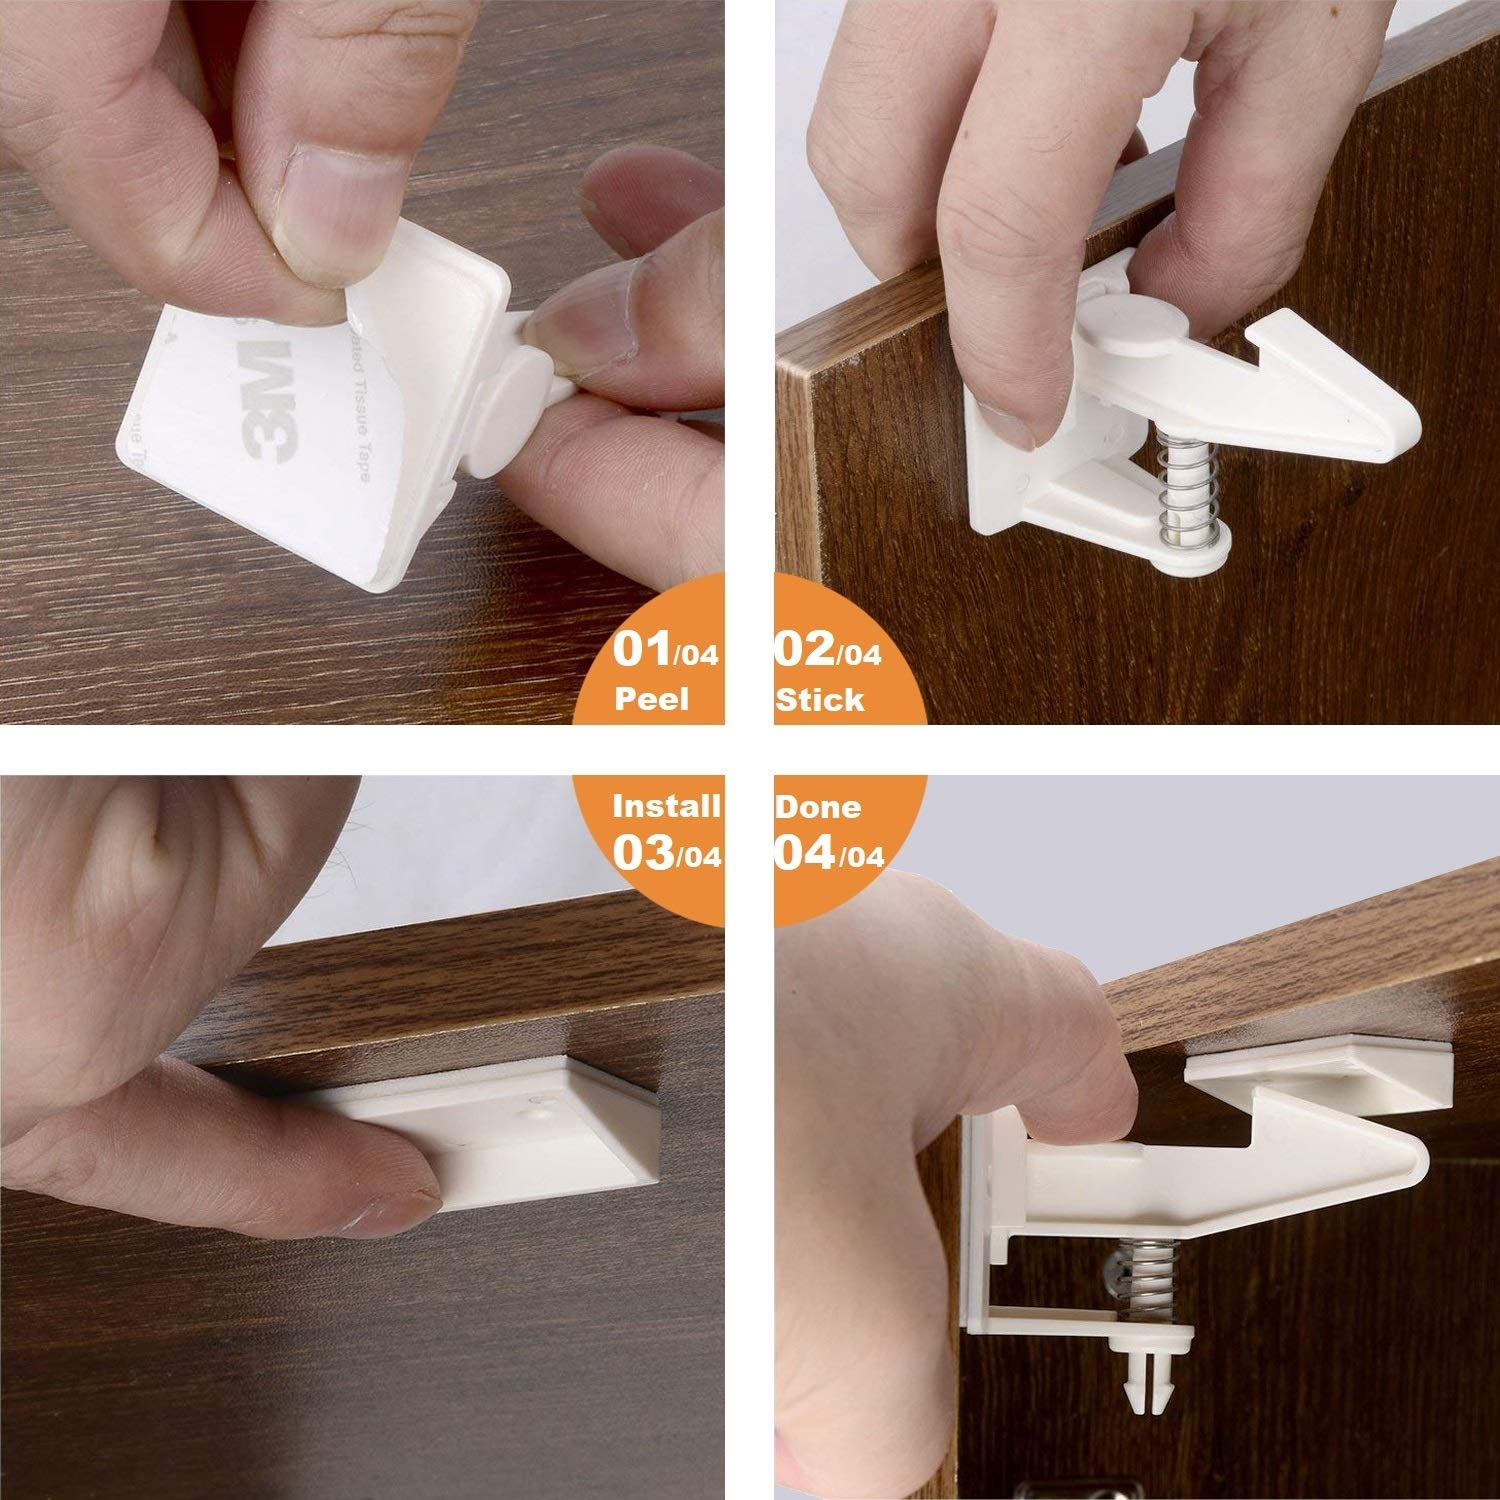 Cabinet Locks Child Safety Latches - OKEFAN 12 Pack Baby Proofing Cabinets Drawer Lock Adhesive Latch for Kids Proof Drawers No Drilling Tools Needed (White)